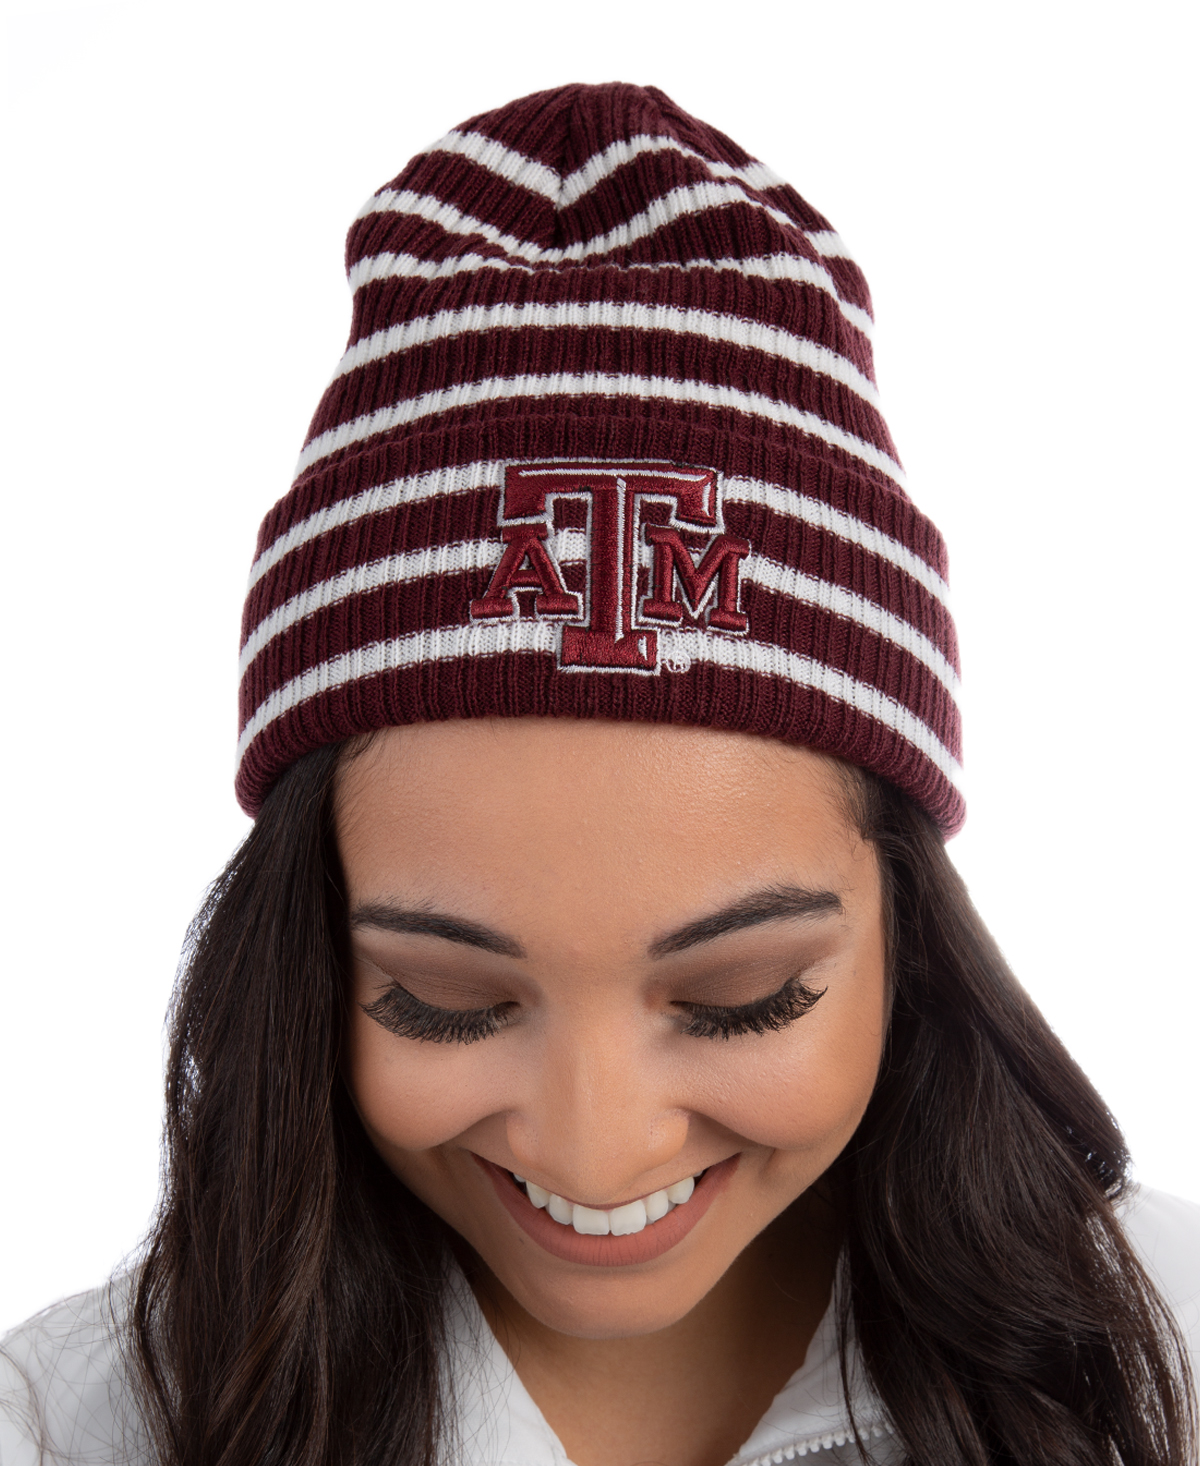 This Adidas beanie is great for the cold weather! The beanie features a  beveled